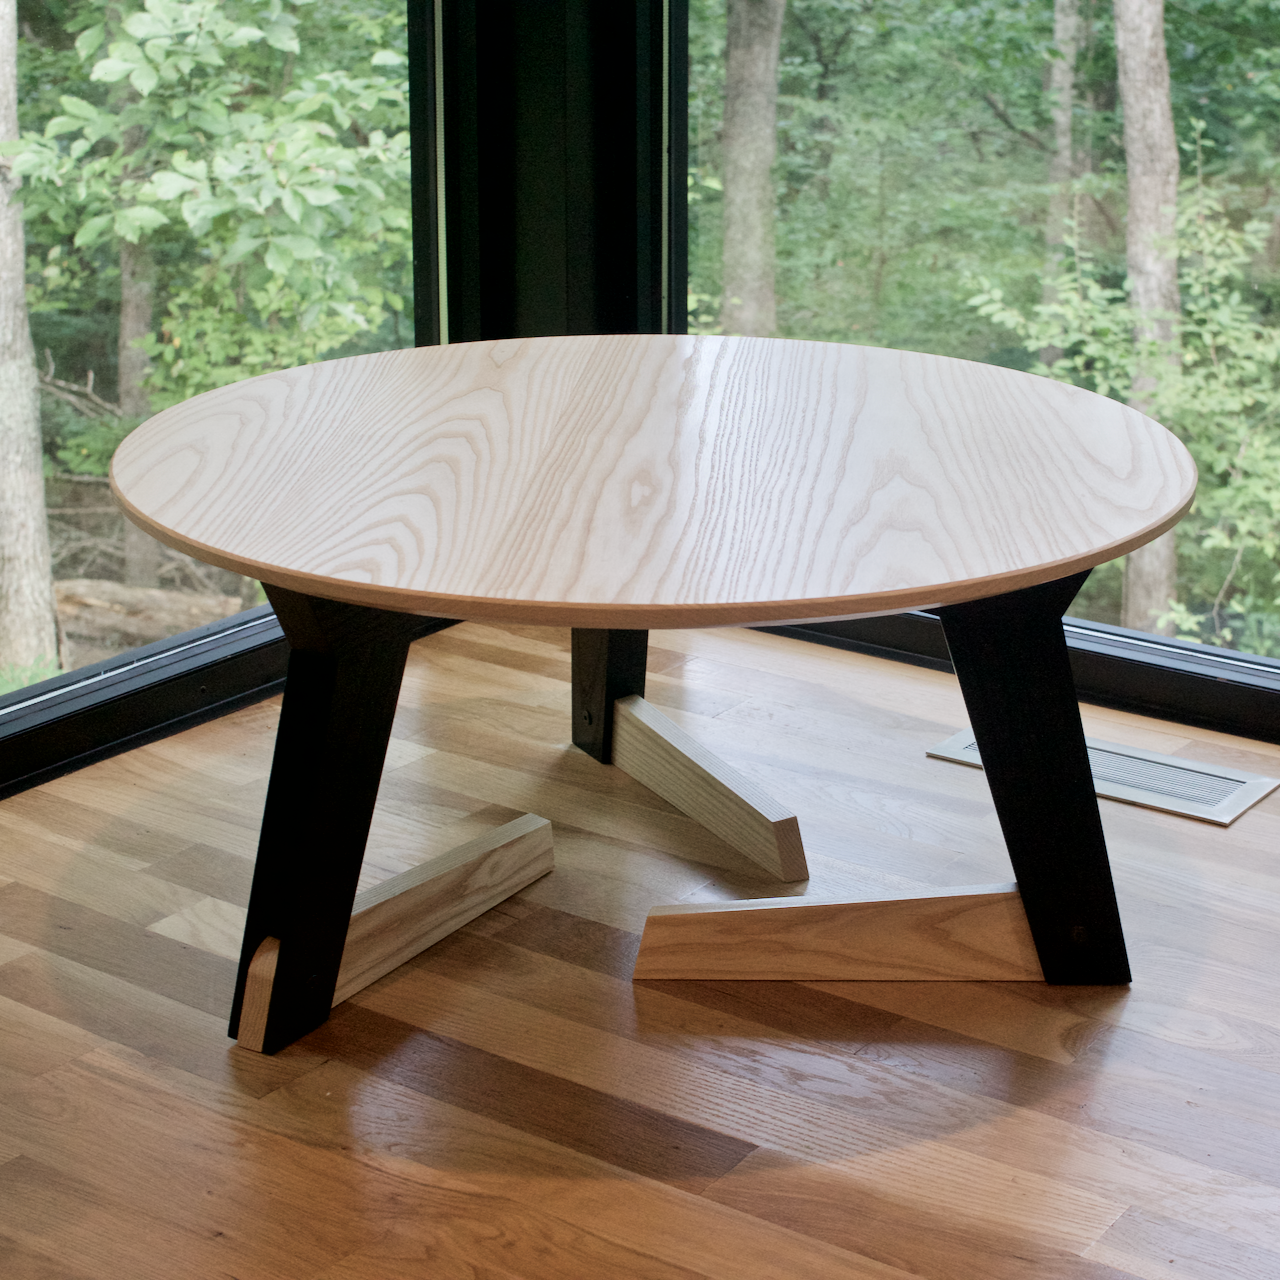 Crouching Table Alexjaynes